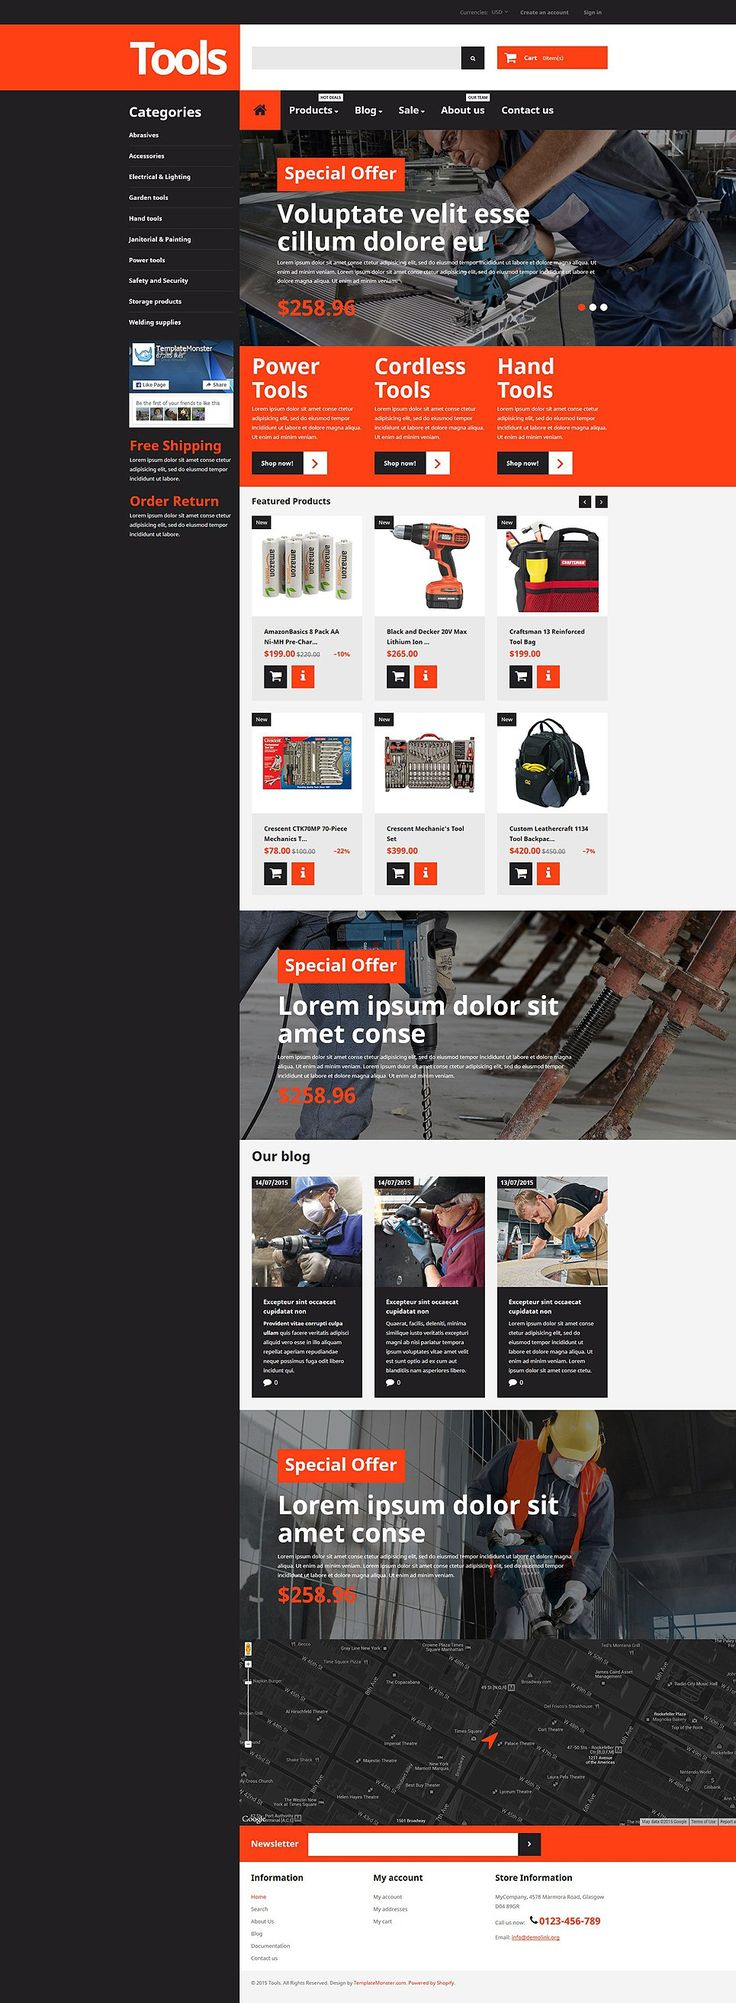 The Best Home Repair, Contractor & DIY Store Themes for Shopify - Tools & Equipment (Shopify theme) Item Picture